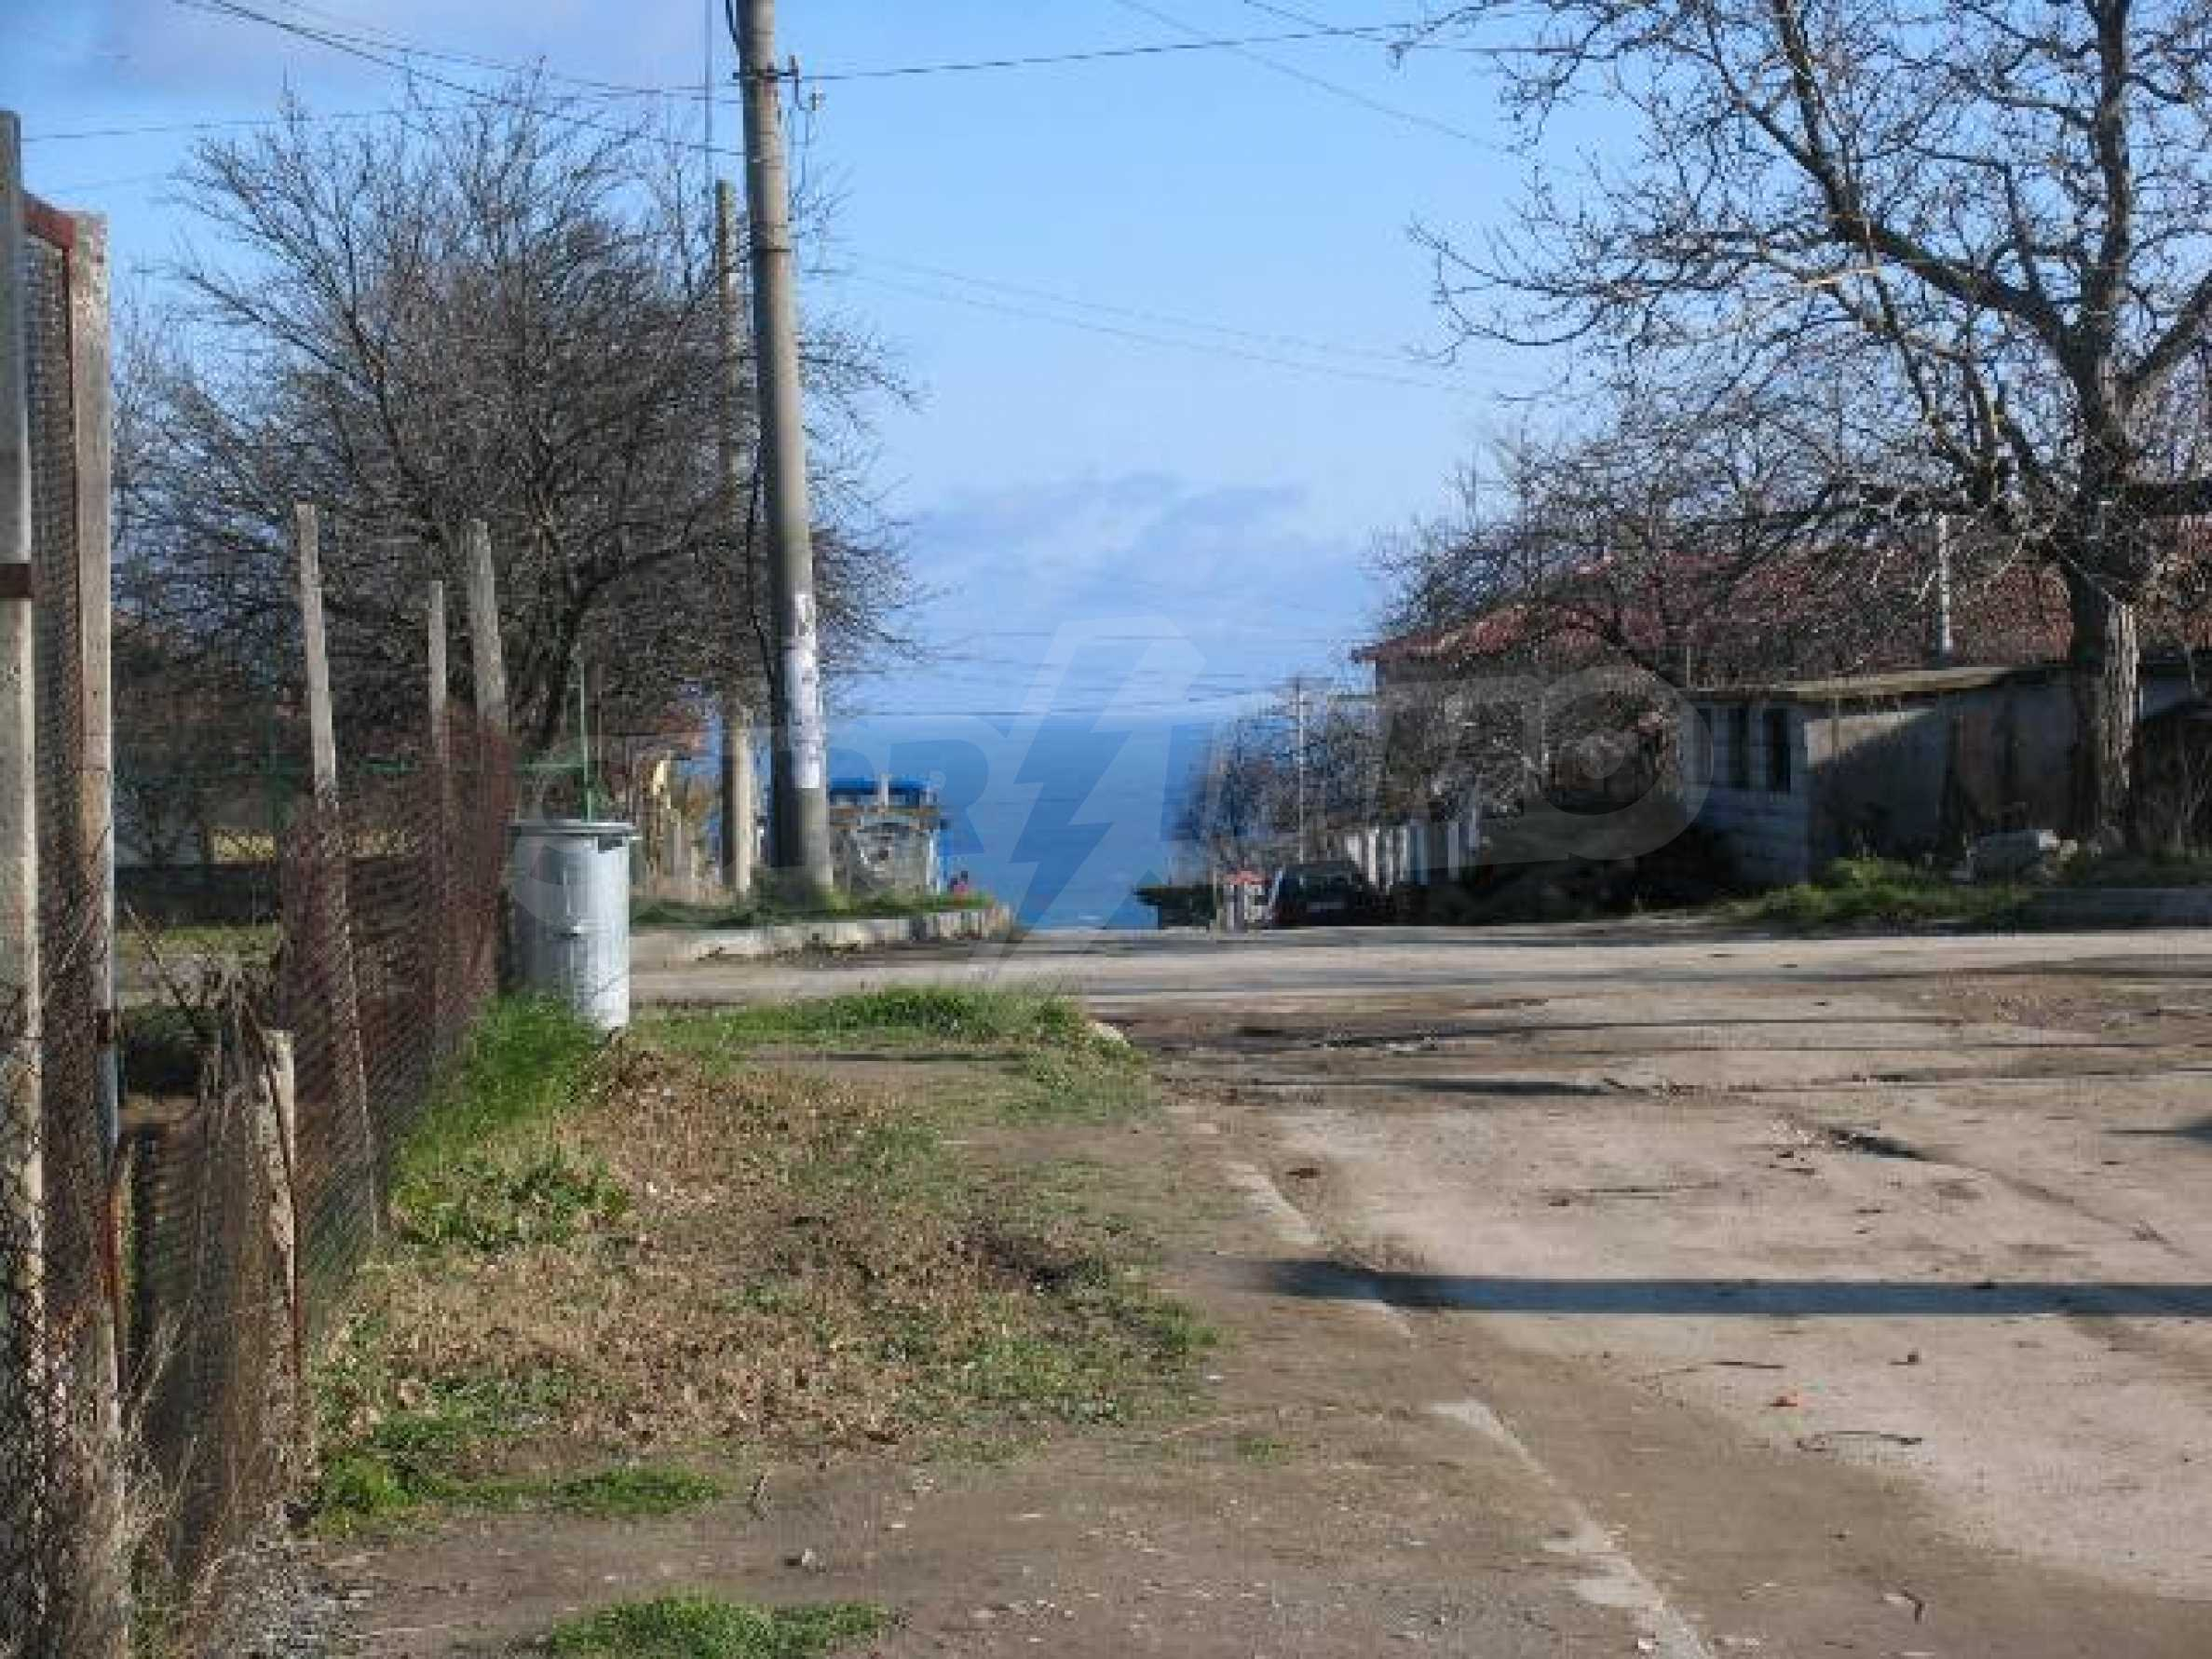 House for sale in Byala resort - just a few minutes from the sea 18